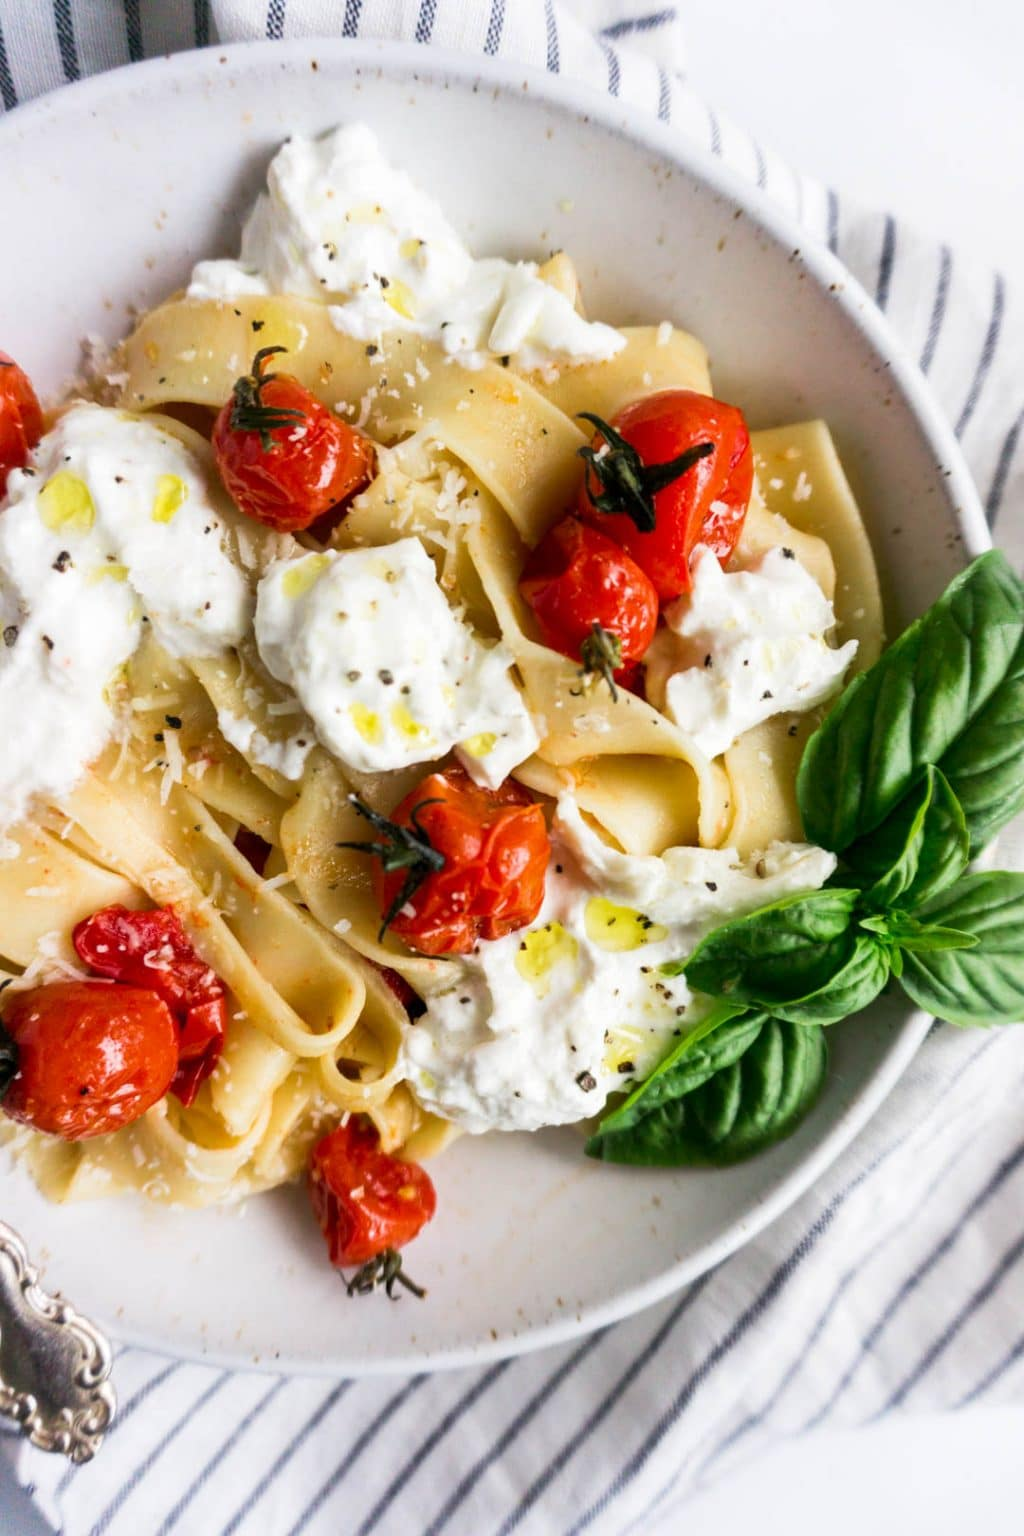 Pappardelle with burrata and burst cherry tomatoes